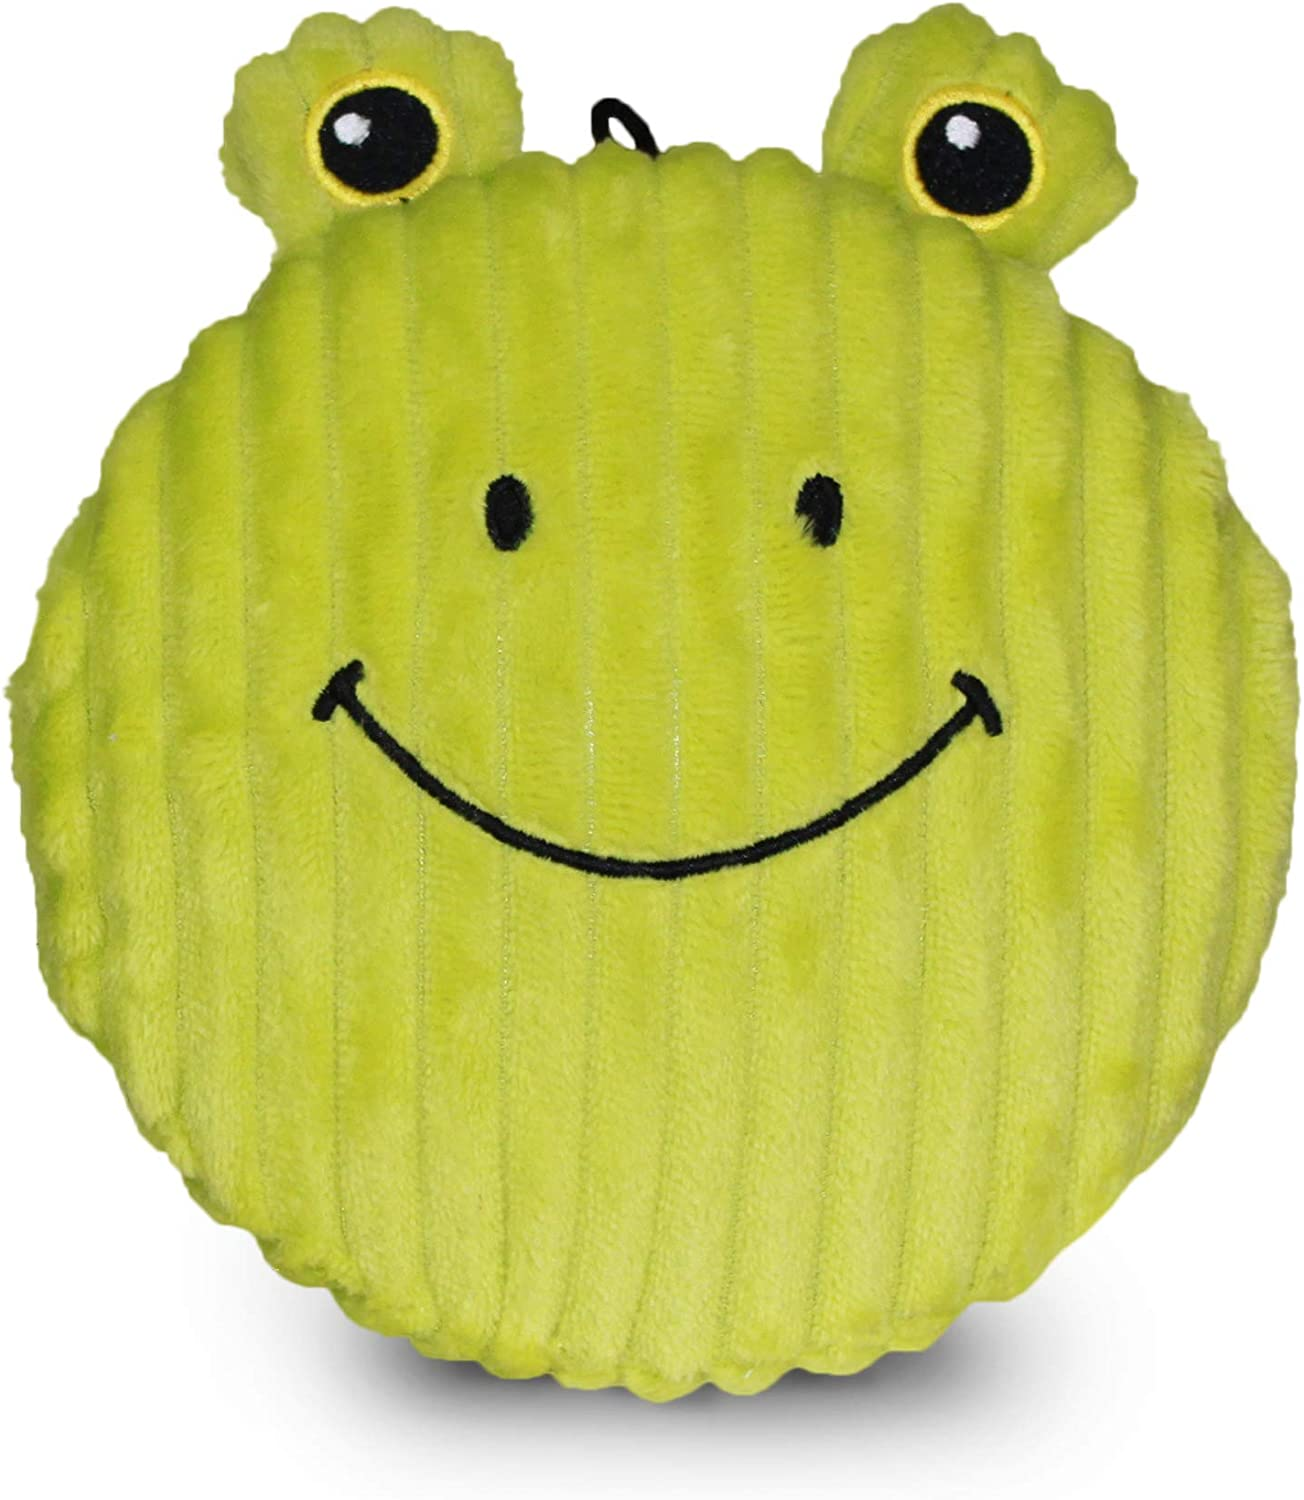 with Cute Funny Sounds to keep boredom at bay Pet Qwerks Dog Squeak Toys Fun Interactive Squeaky Plush Pet Toy Choose from Various Animal Characters